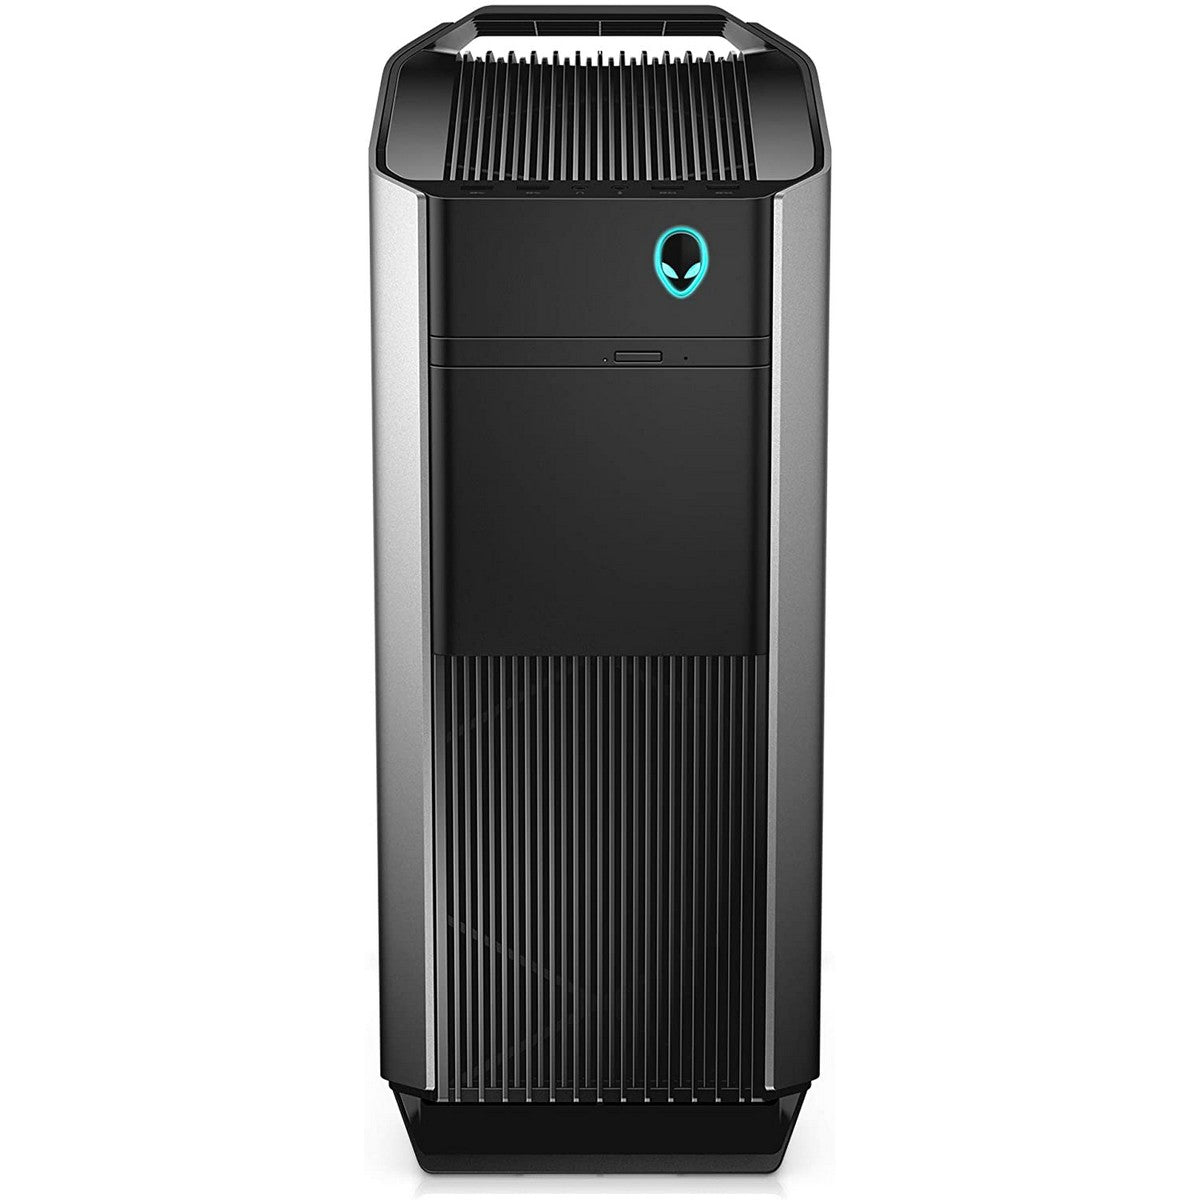 Alienware Aurora R8 Gaming Desktop (With Alienware AW2521HFL Monitor) , Core i7 i7-9700K, NVIDIA RTX 2070 Super 8GB,16GB RAM , 512GB SSD + 1TB HDD, Windows 10 Home